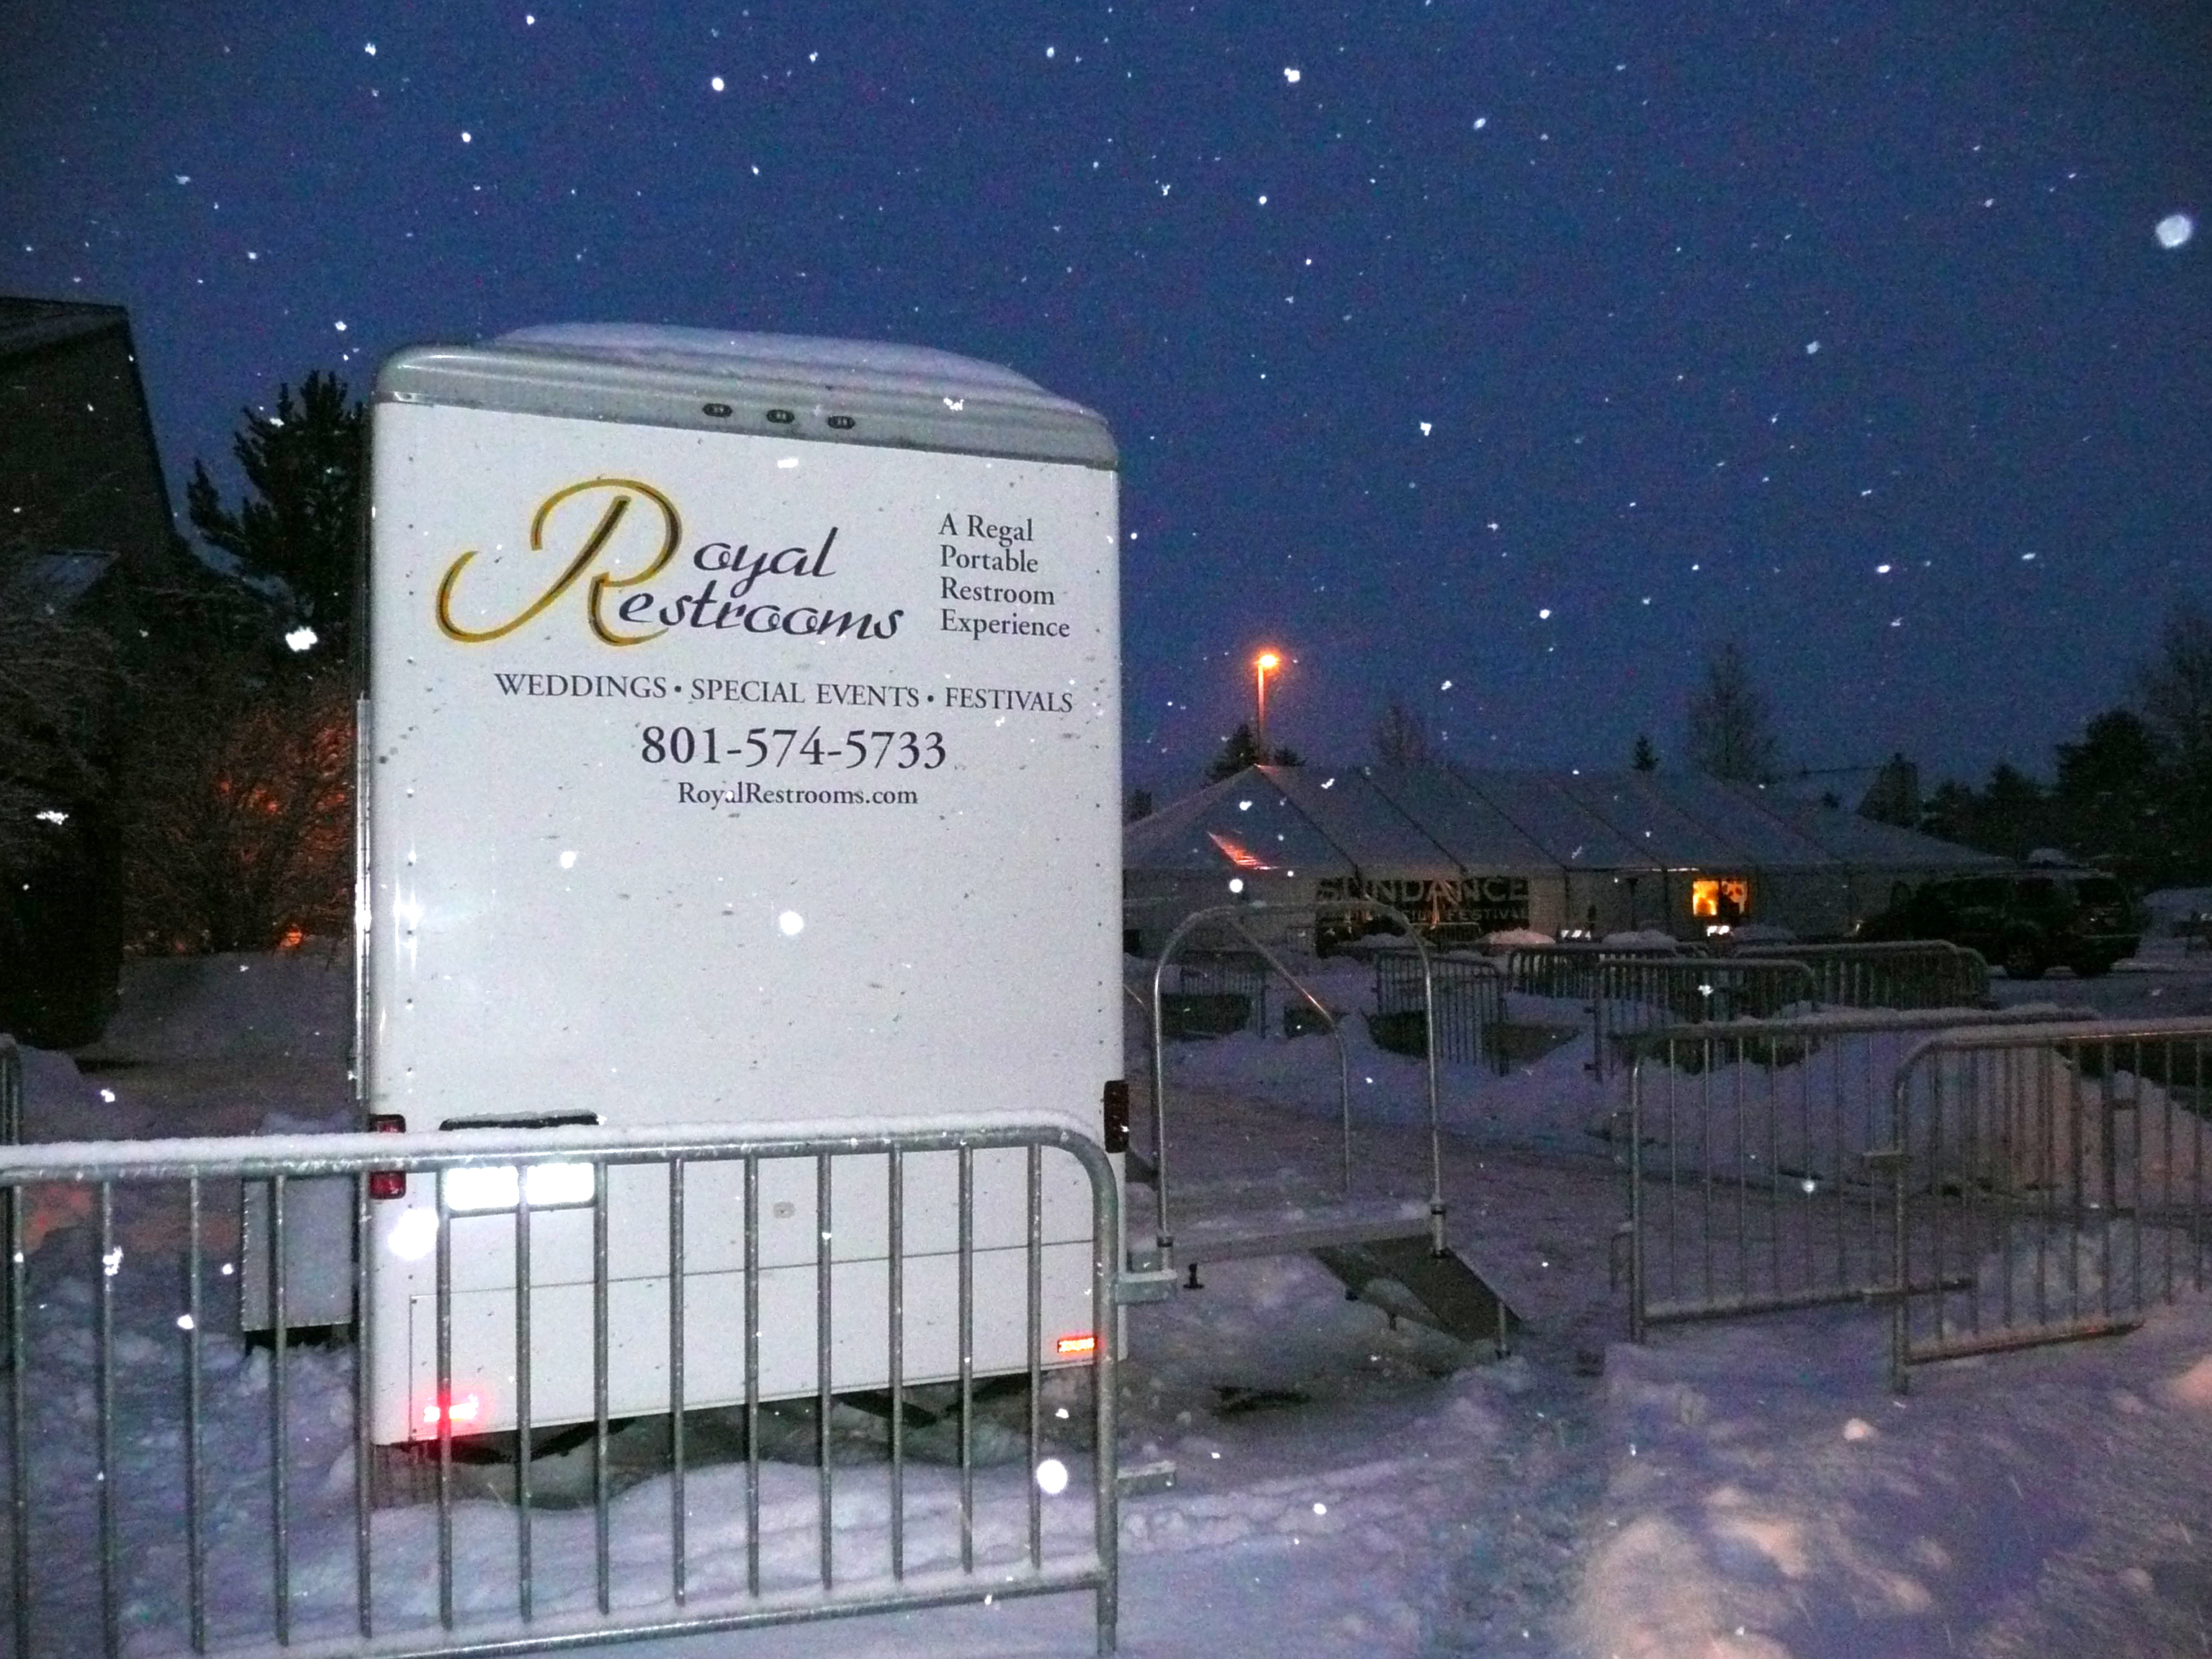 utah-portable-restrooms-at-sundance-film-festival-night